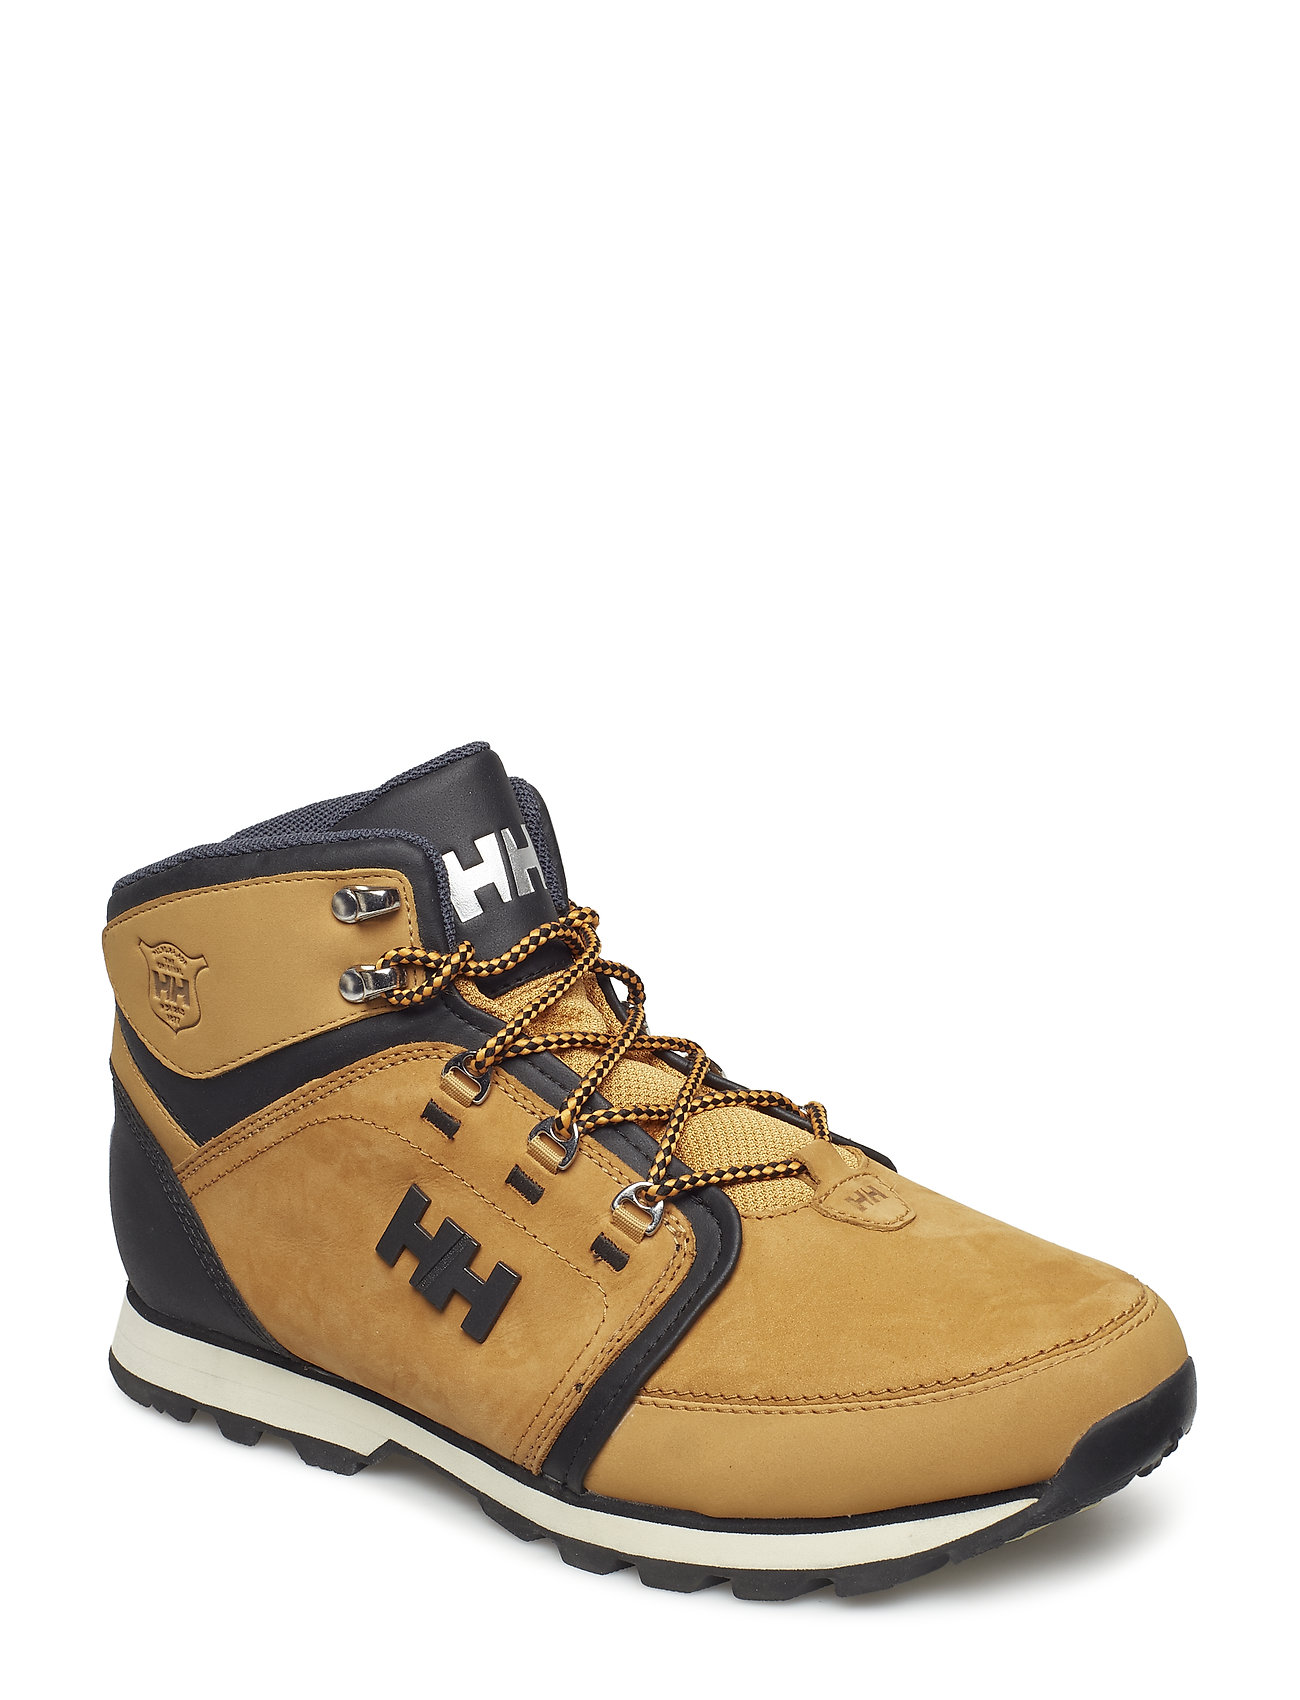 Helly Hansen KOPPERVIK - NEW WHEAT / BLACK / NATURA